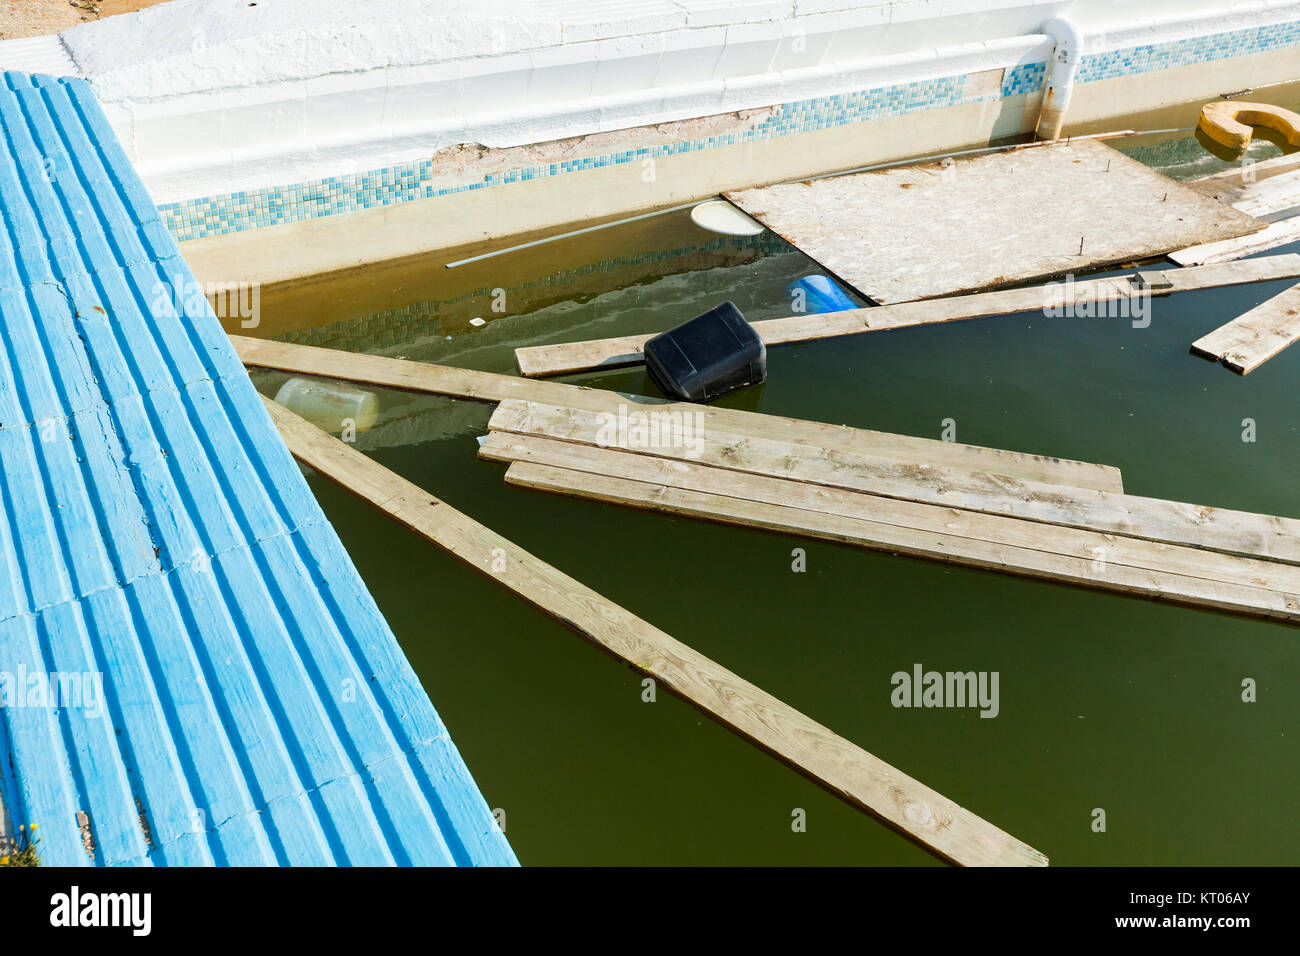 Abandoned Swimming Pool Holiday Camp Isle Of Wight Uk Stock Photo 169650067 Alamy